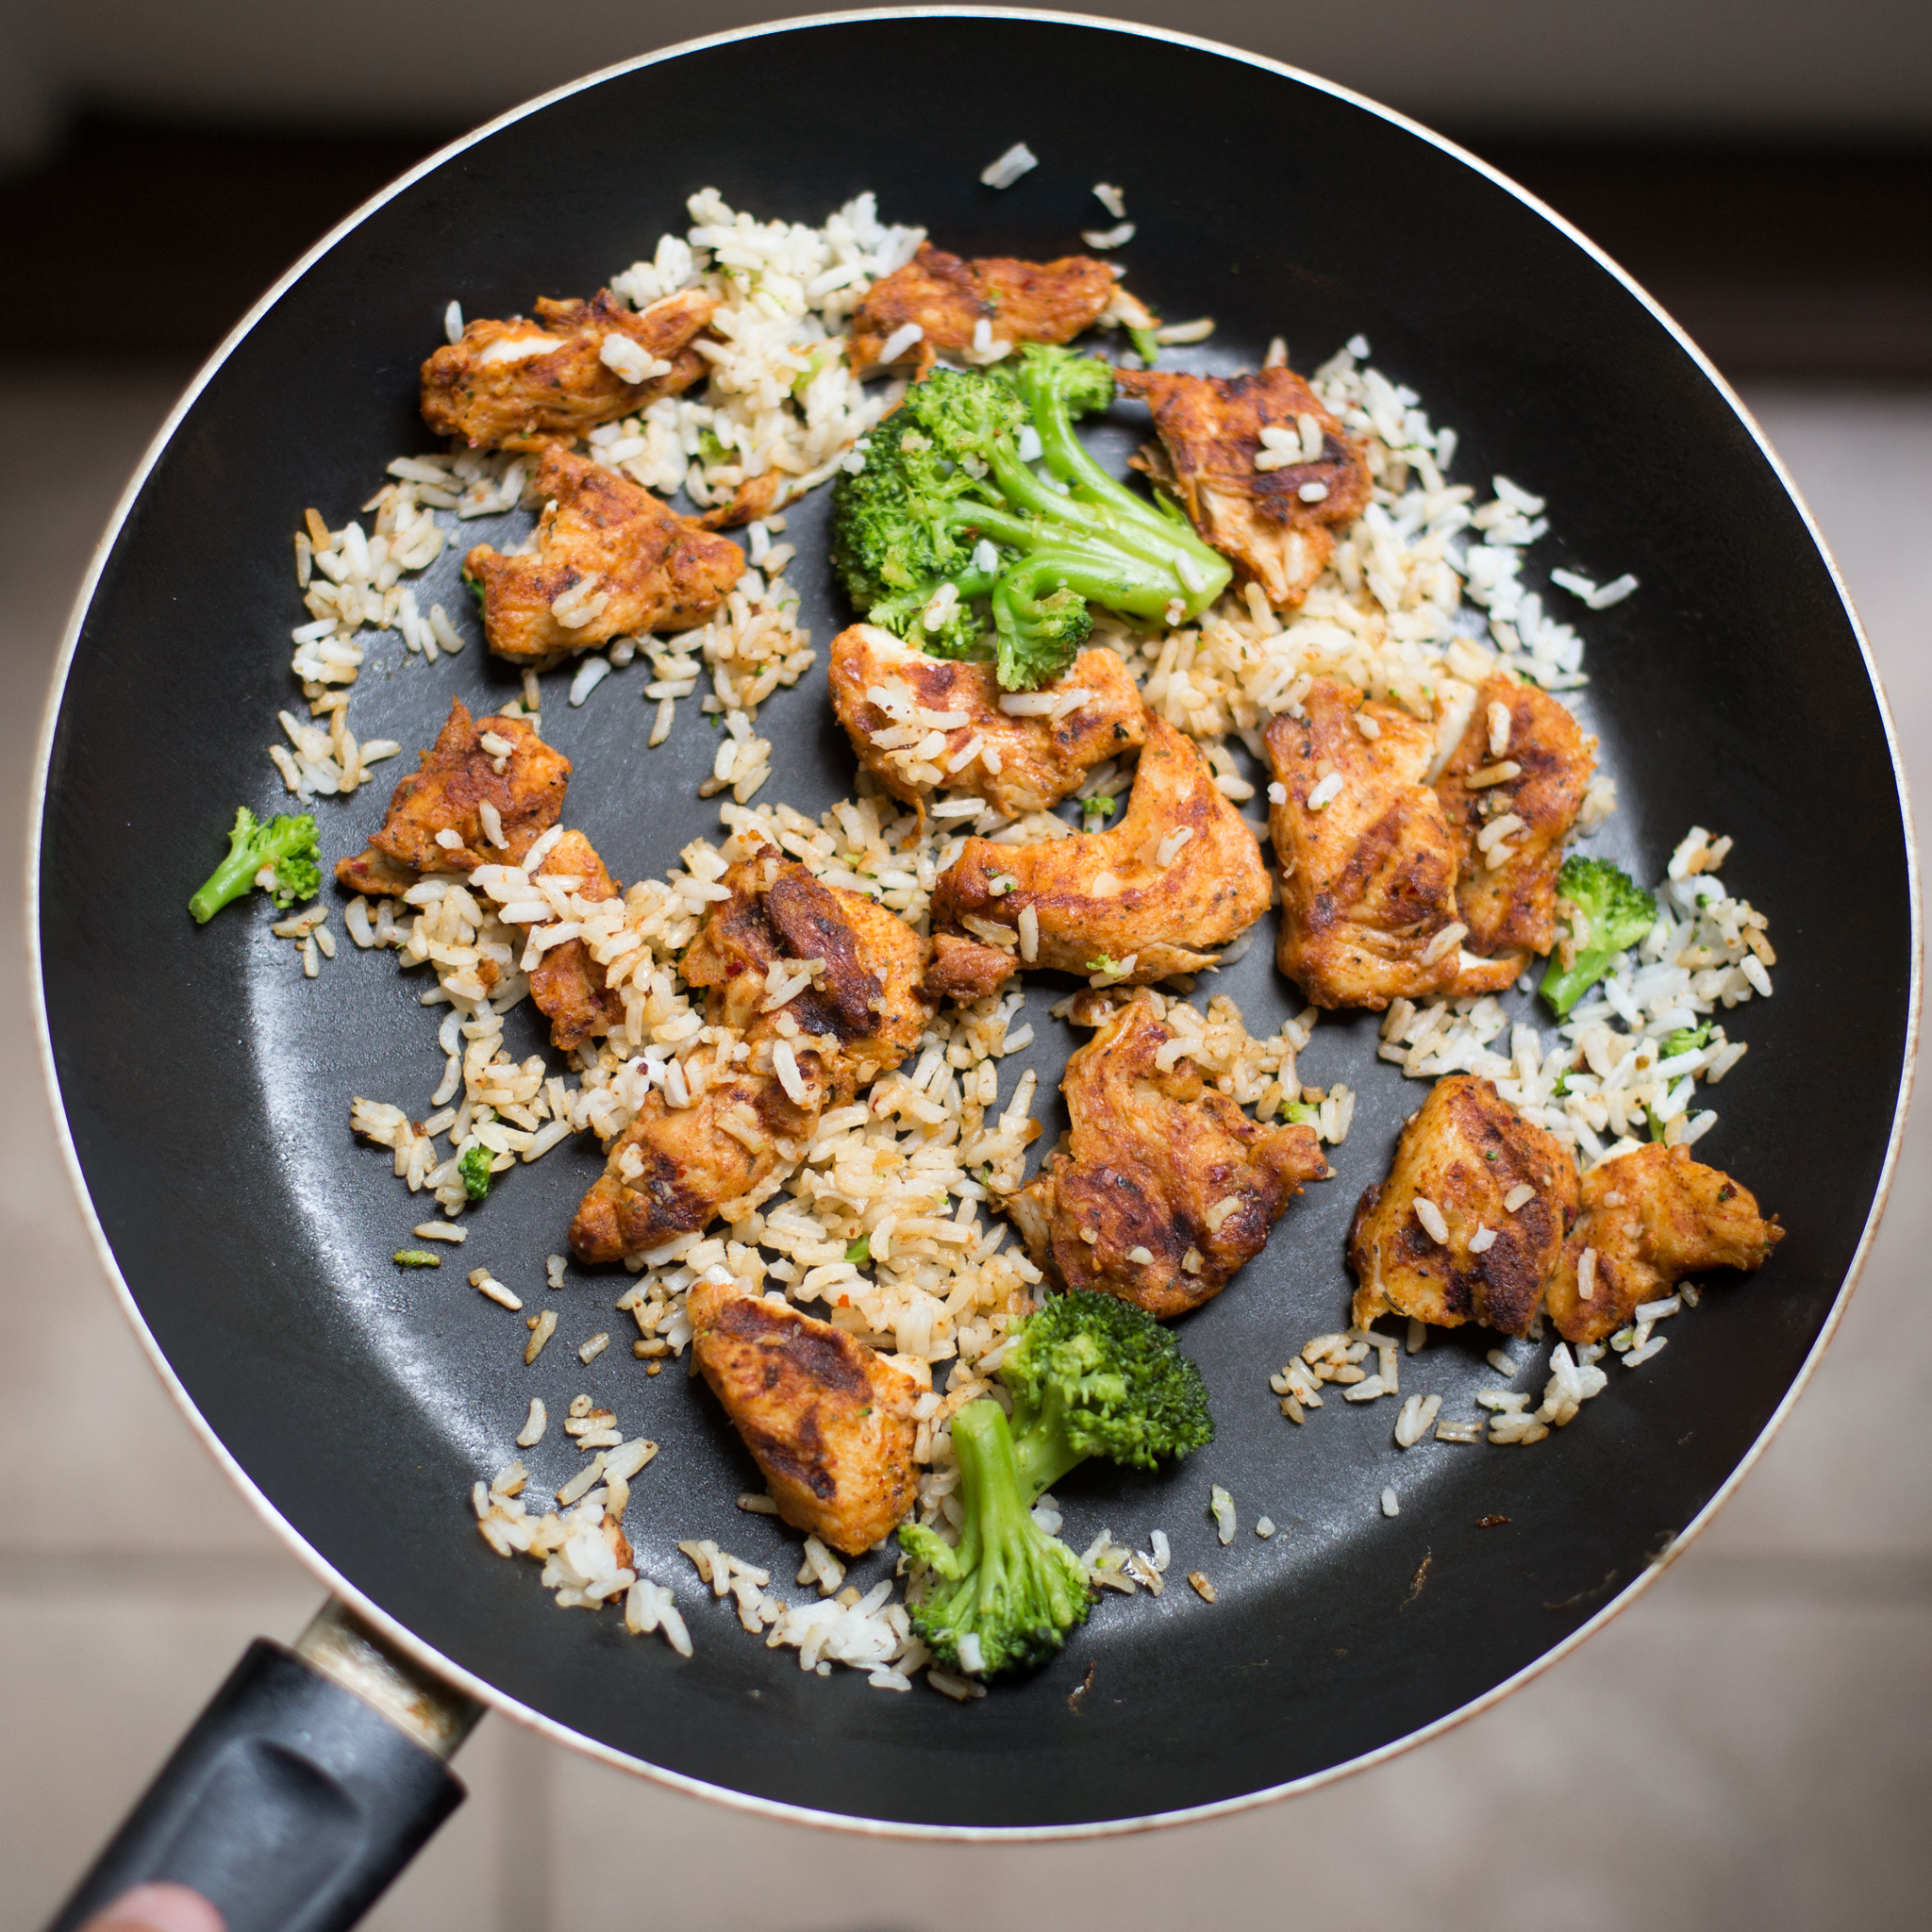 Canva - White Rice, Chicken and Broccoli on Black Non-stick Pan.jpg